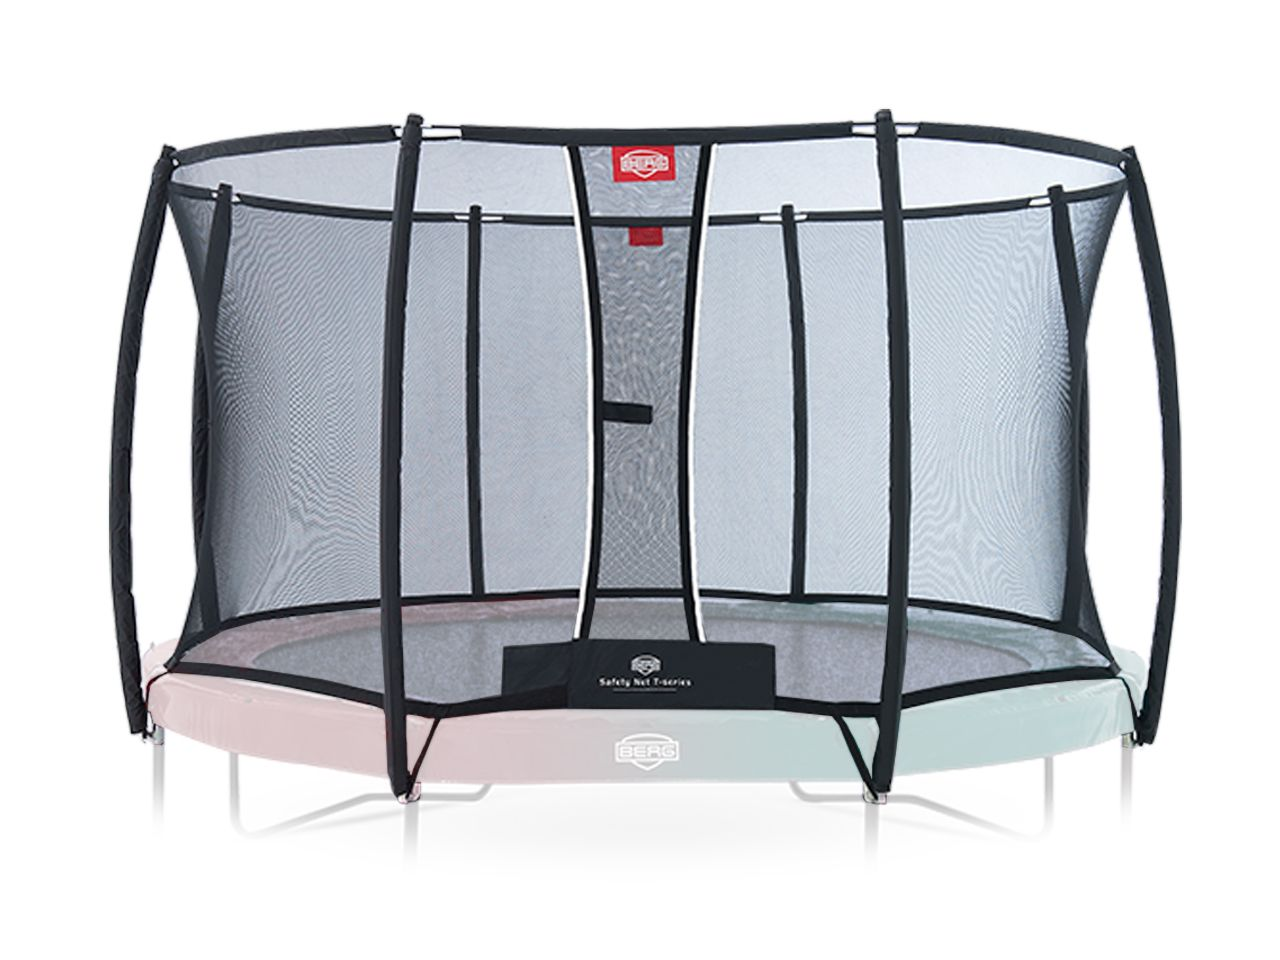 BERG Safety Net T-series 430